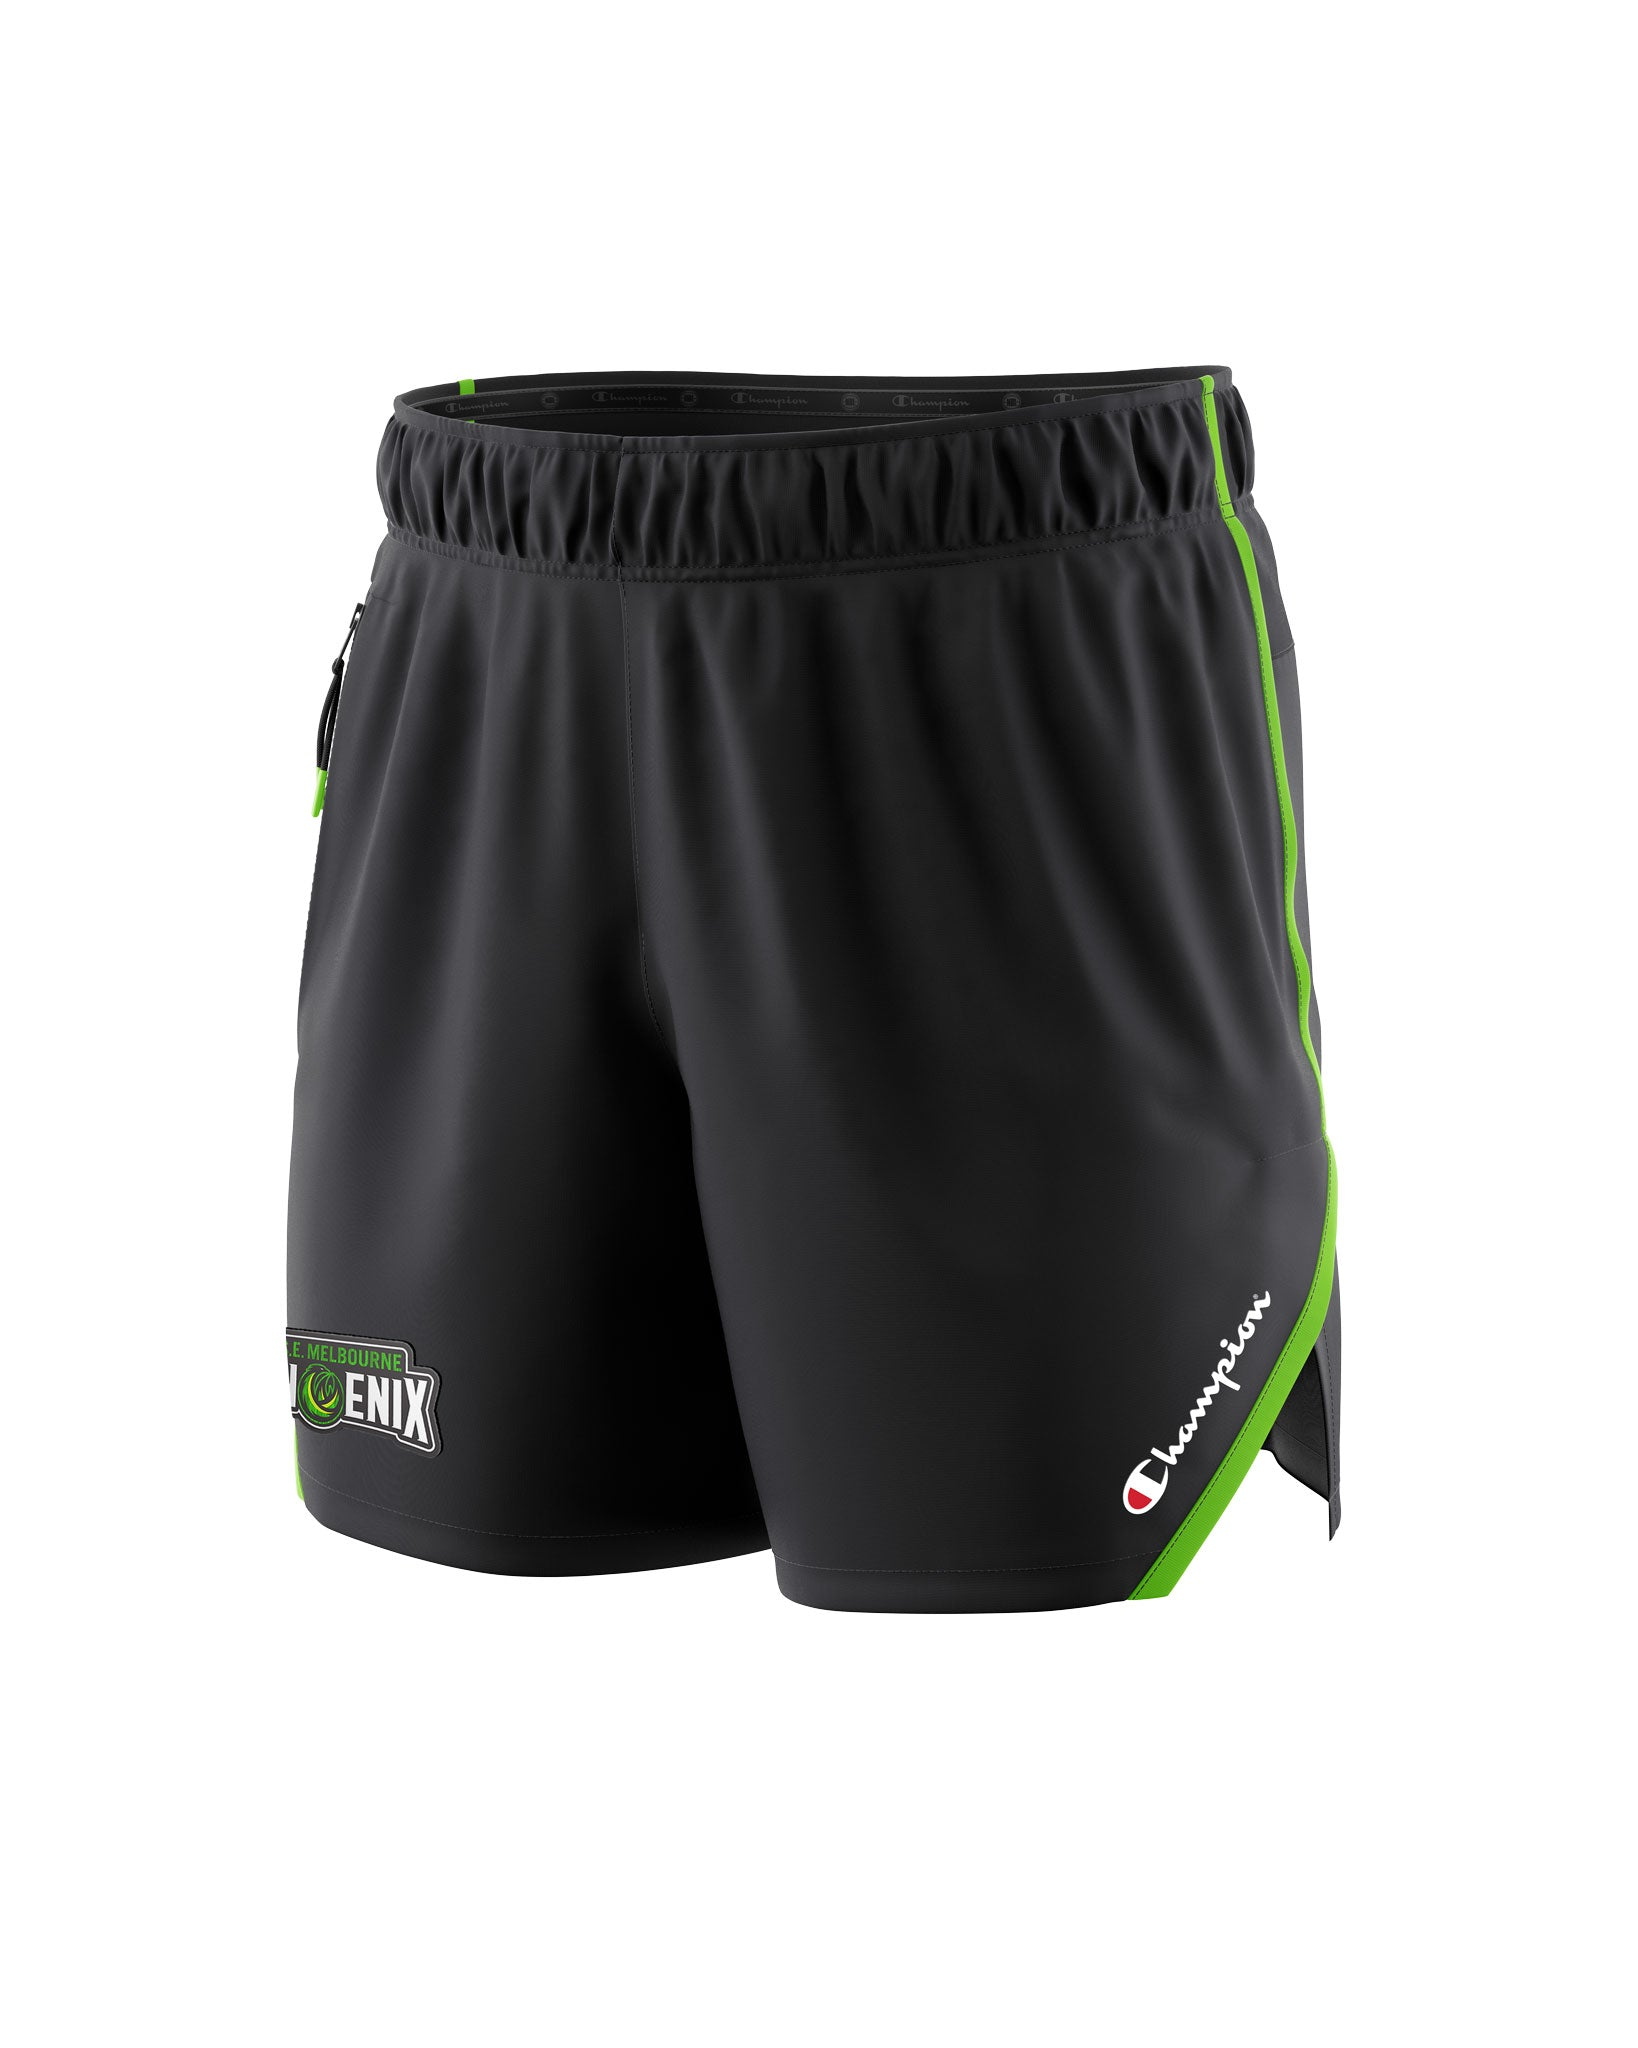 S.E. Melbourne Phoenix 20/21 Gym Shorts